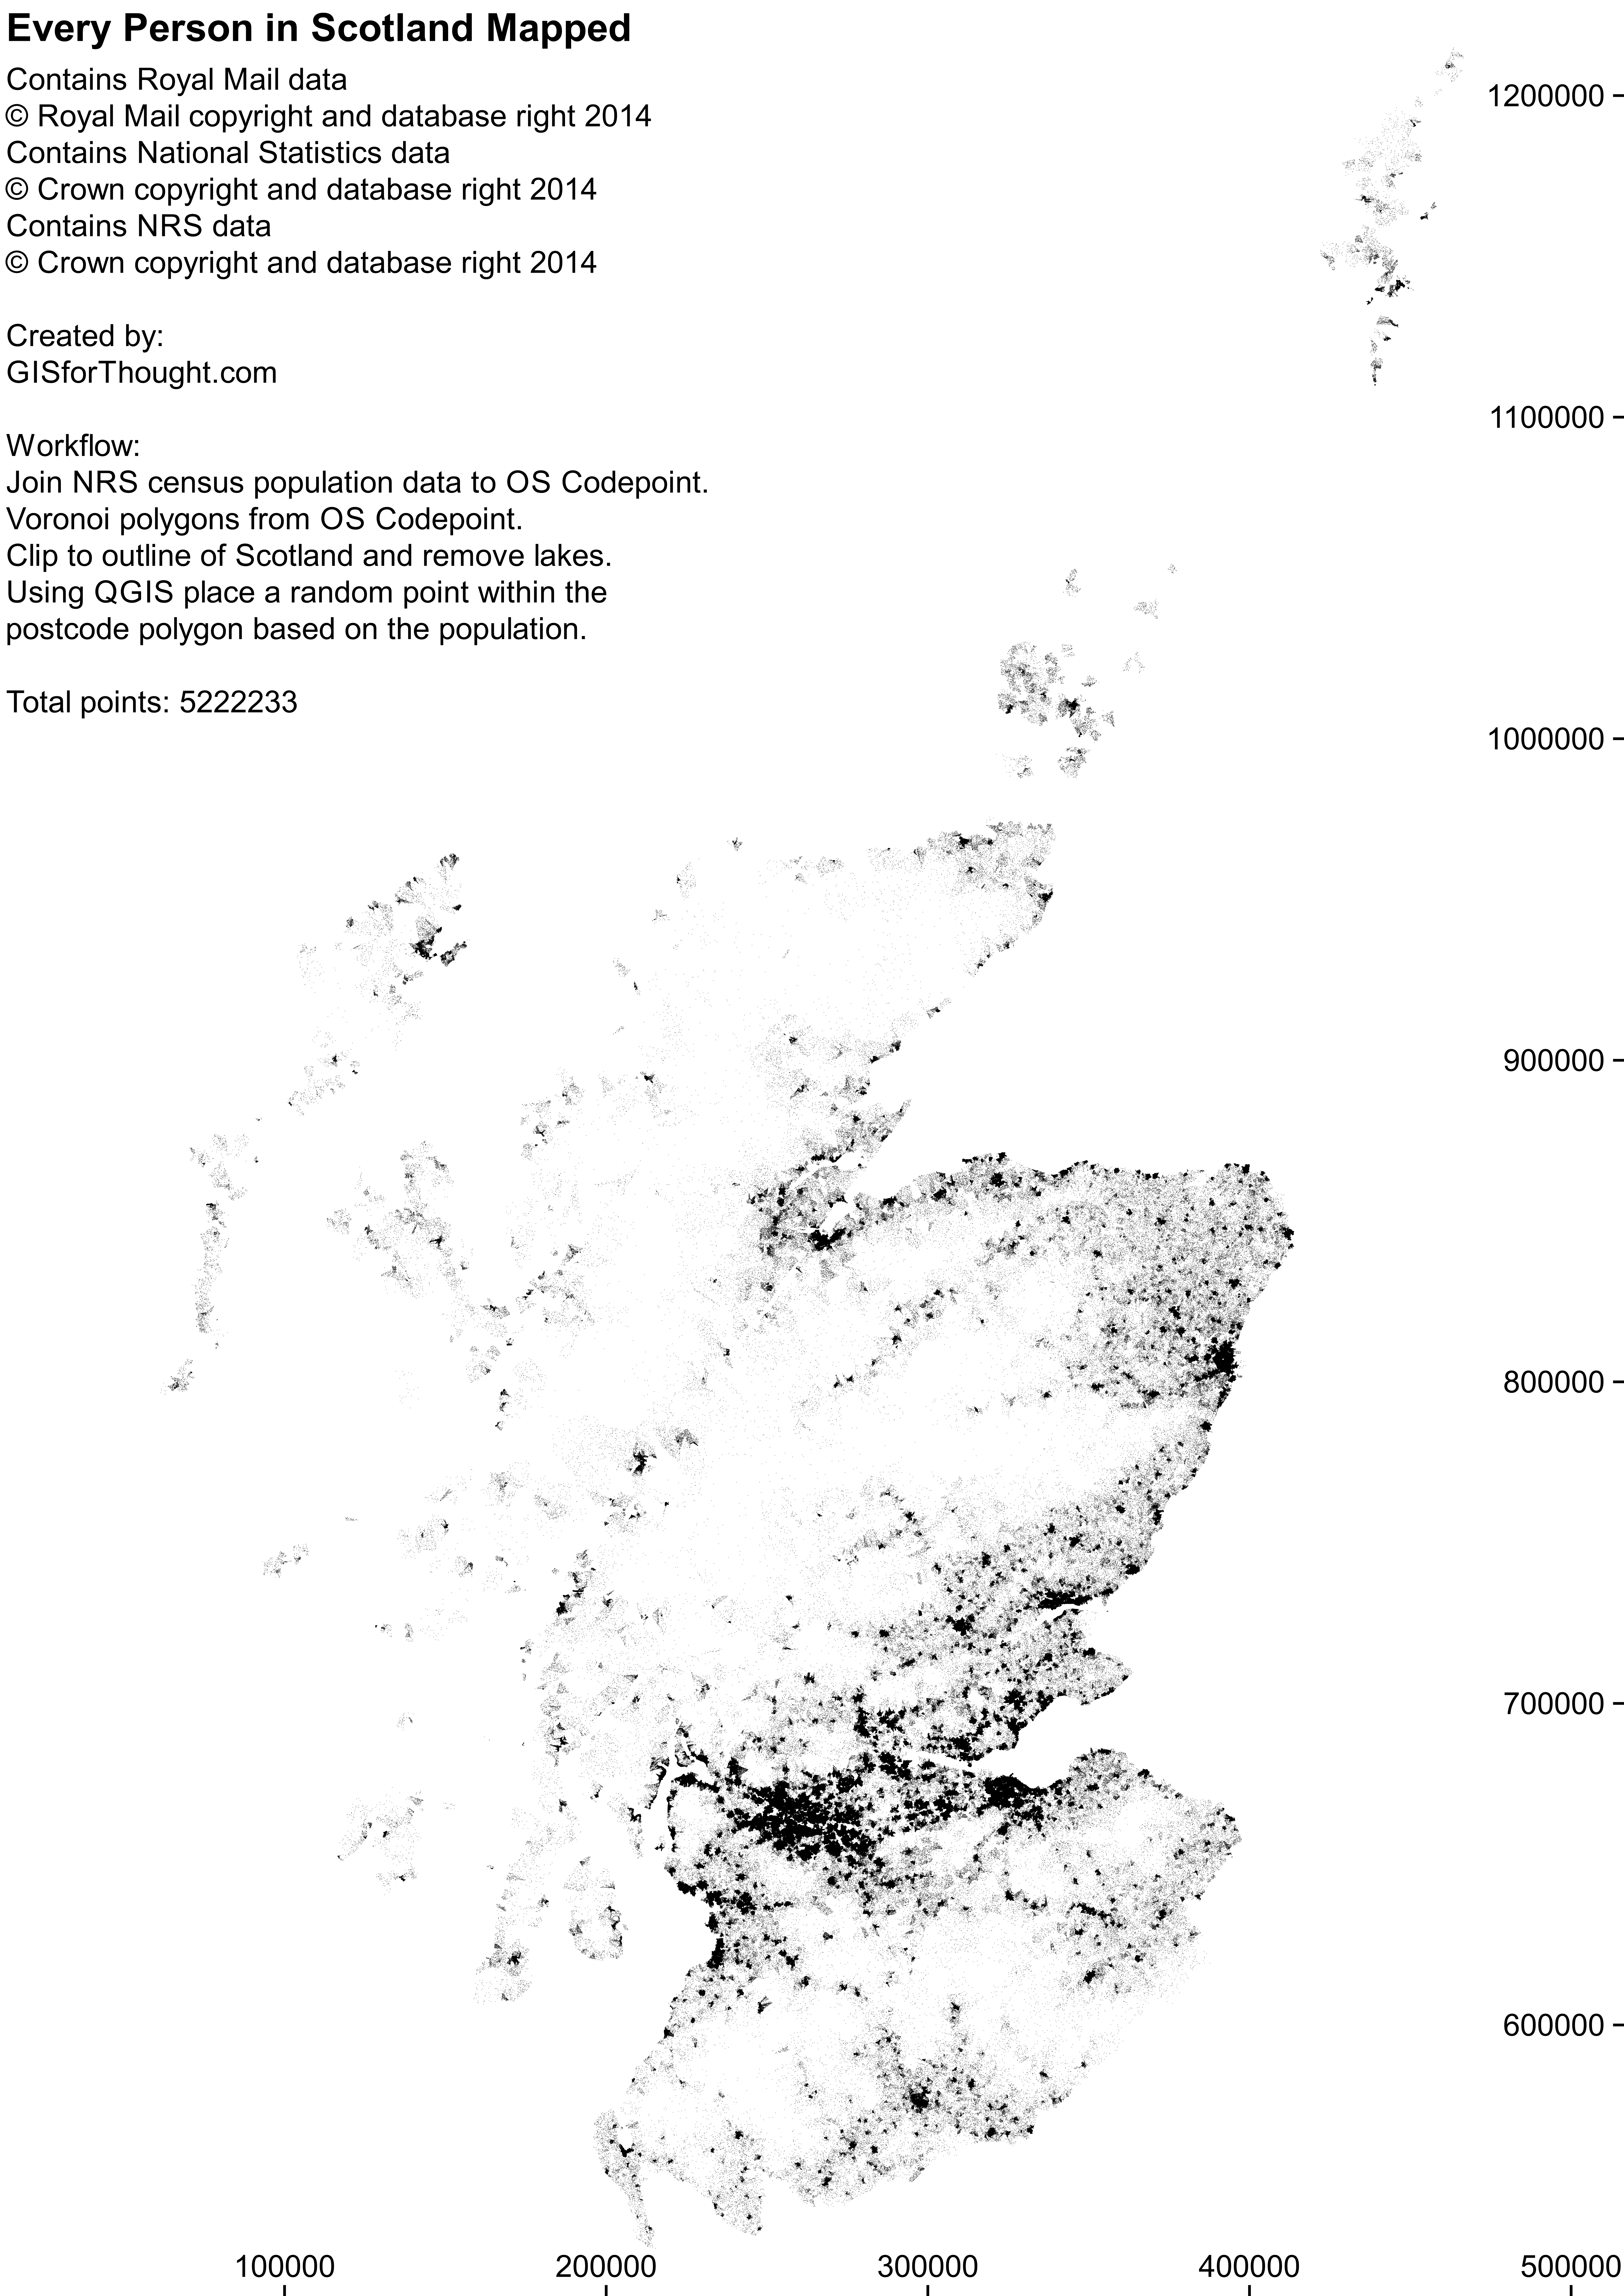 Population of Scotland Mapped